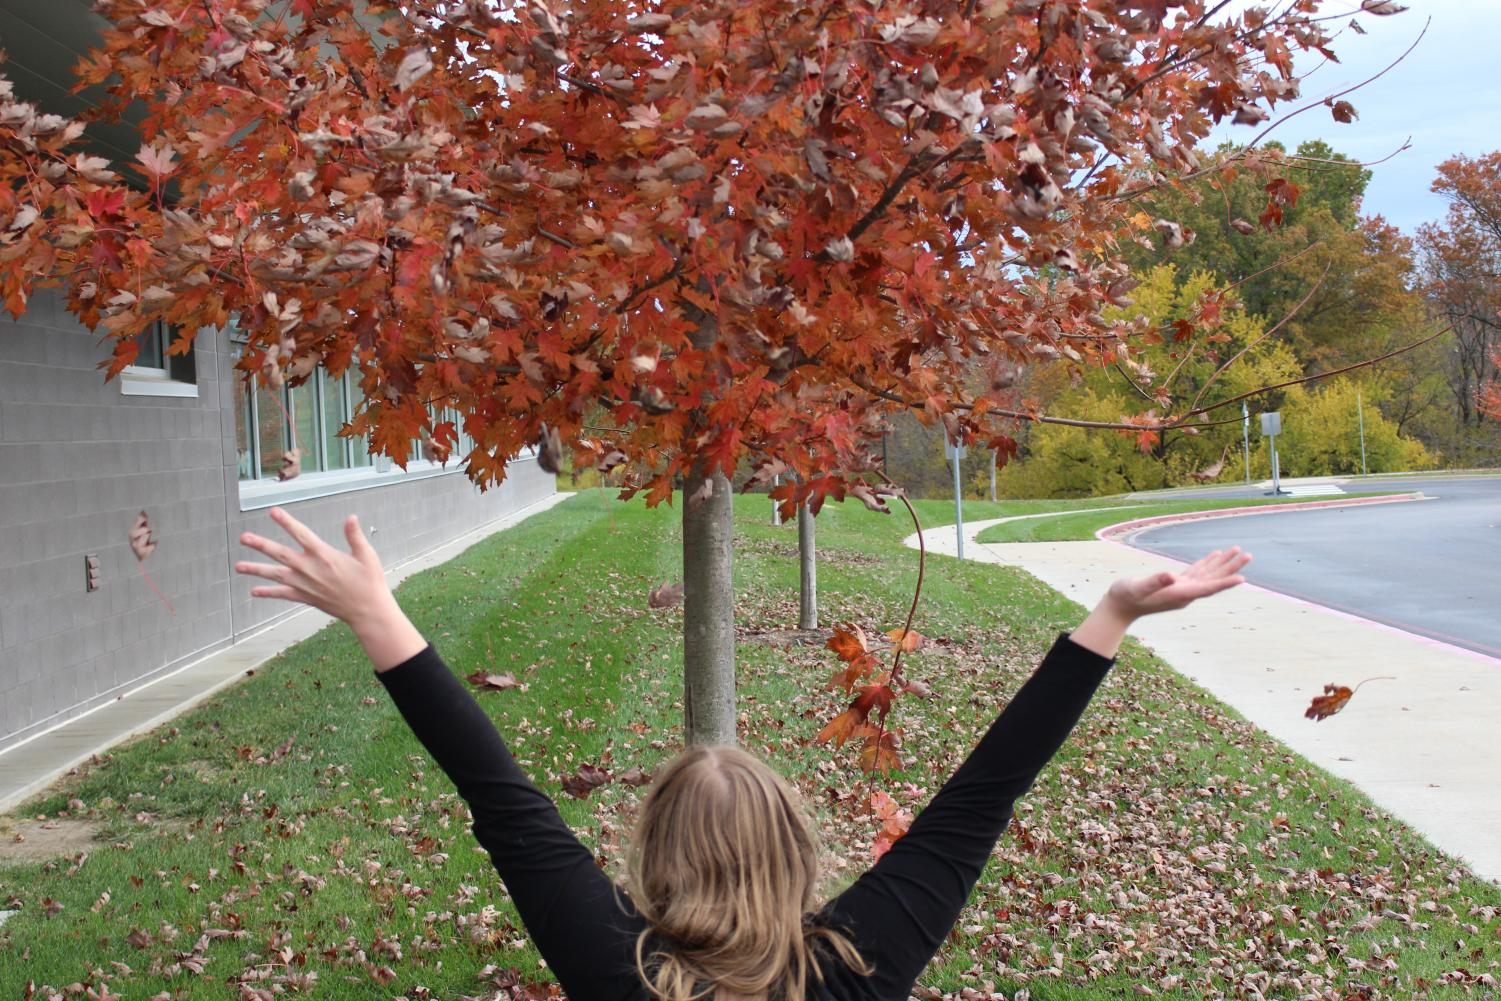 A student happily throws leaves in the air. (Allison Collier)